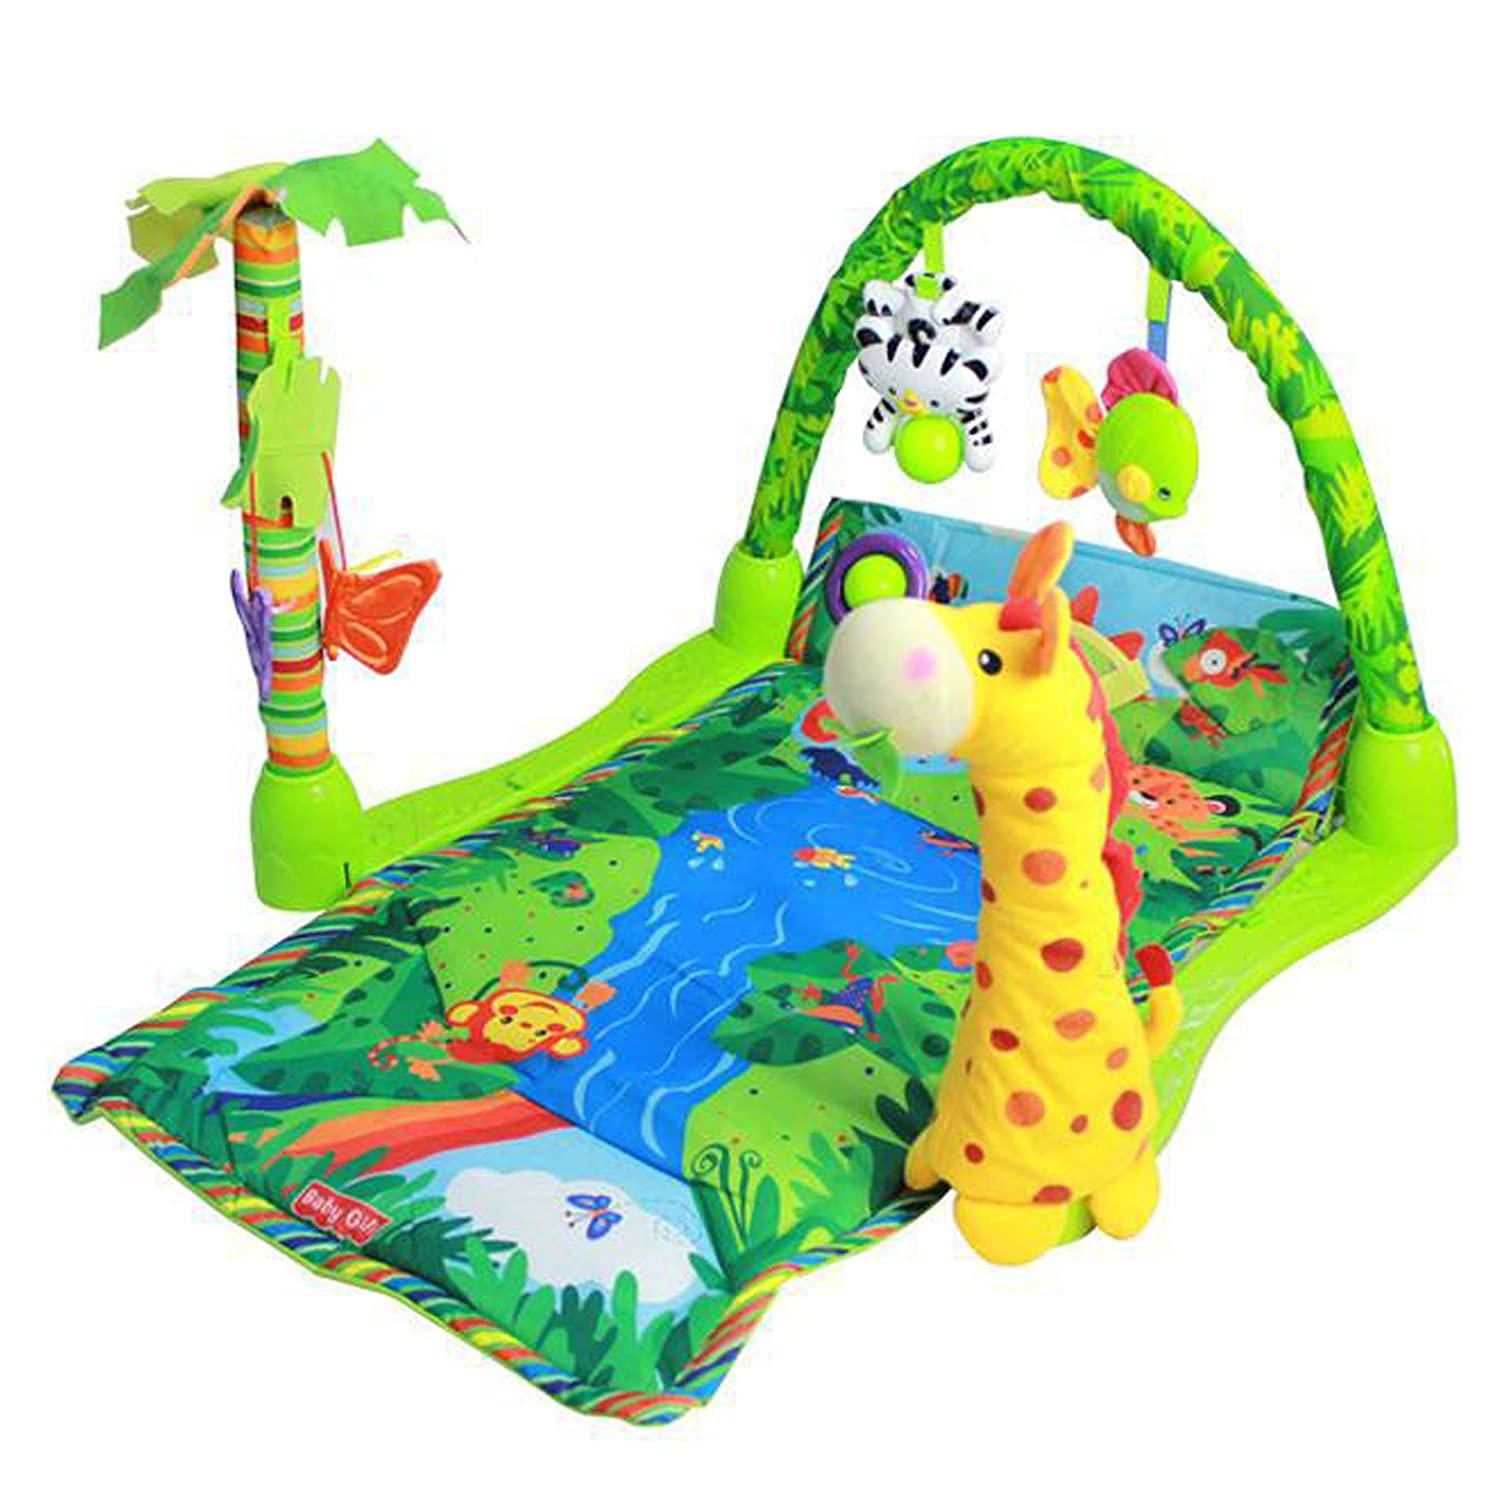 Amazon Baby Gift Rainforest Musical Gym Lullaby Baby